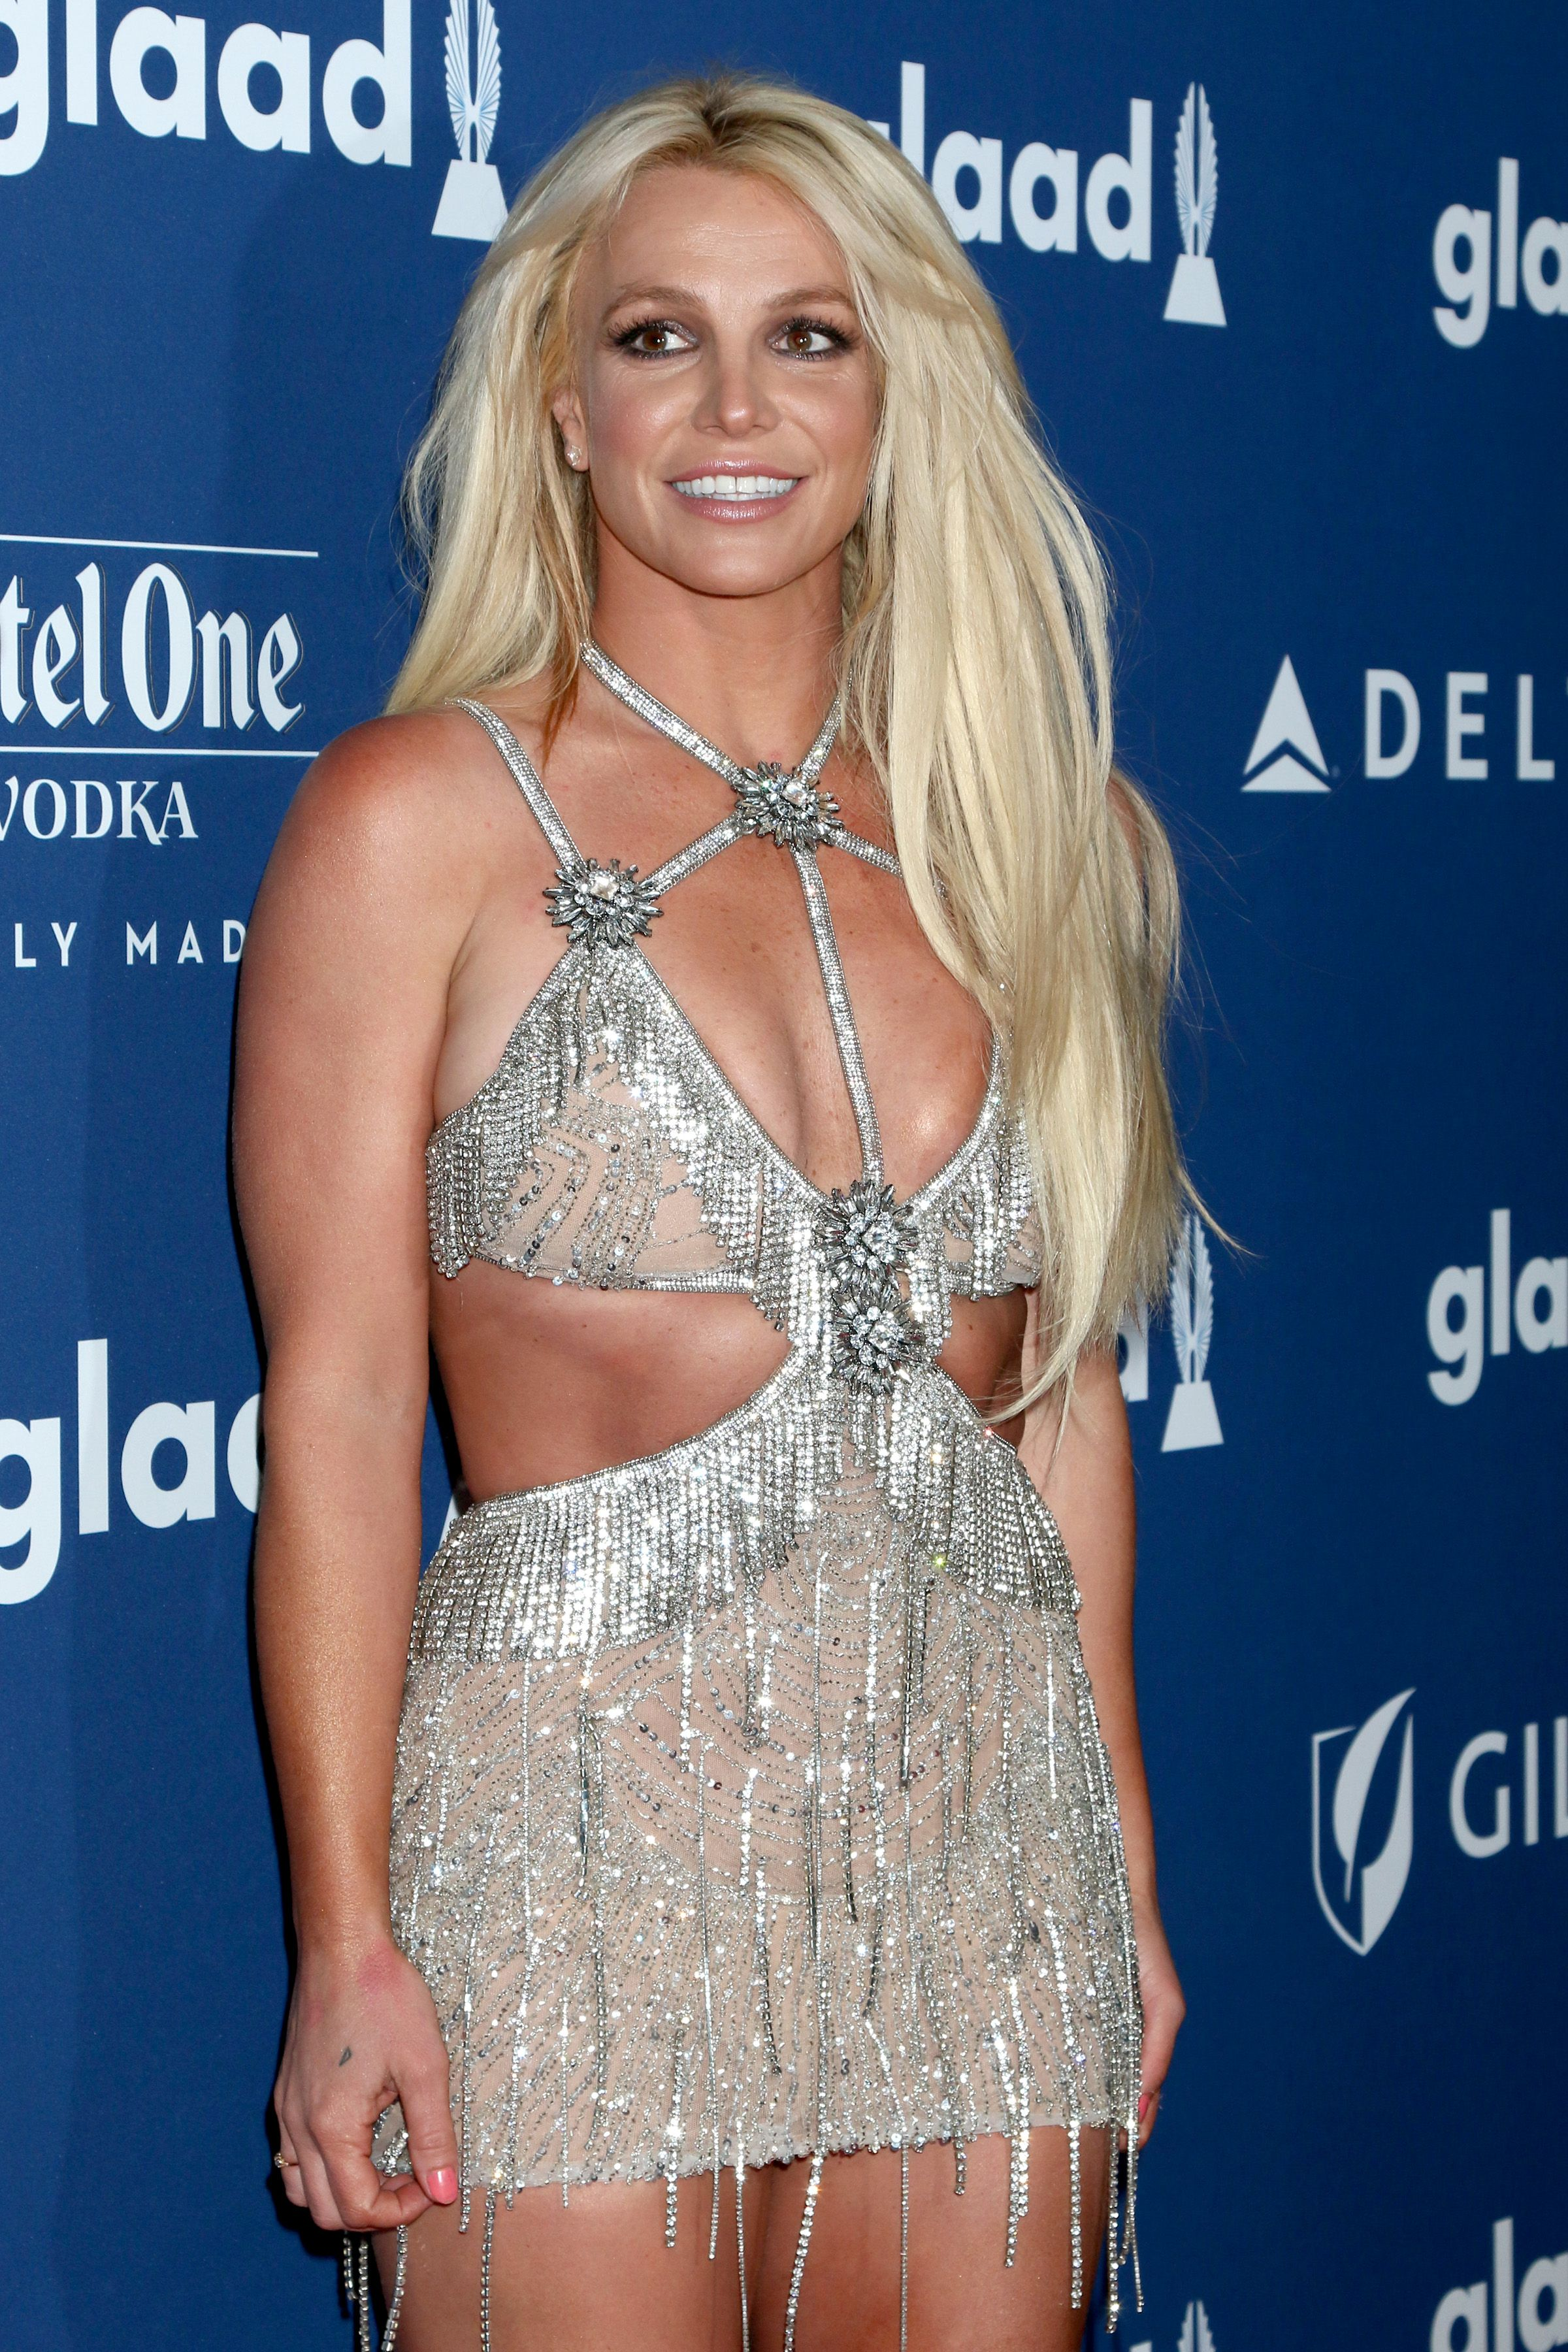 Britney Spears smiling in strappy silver dress